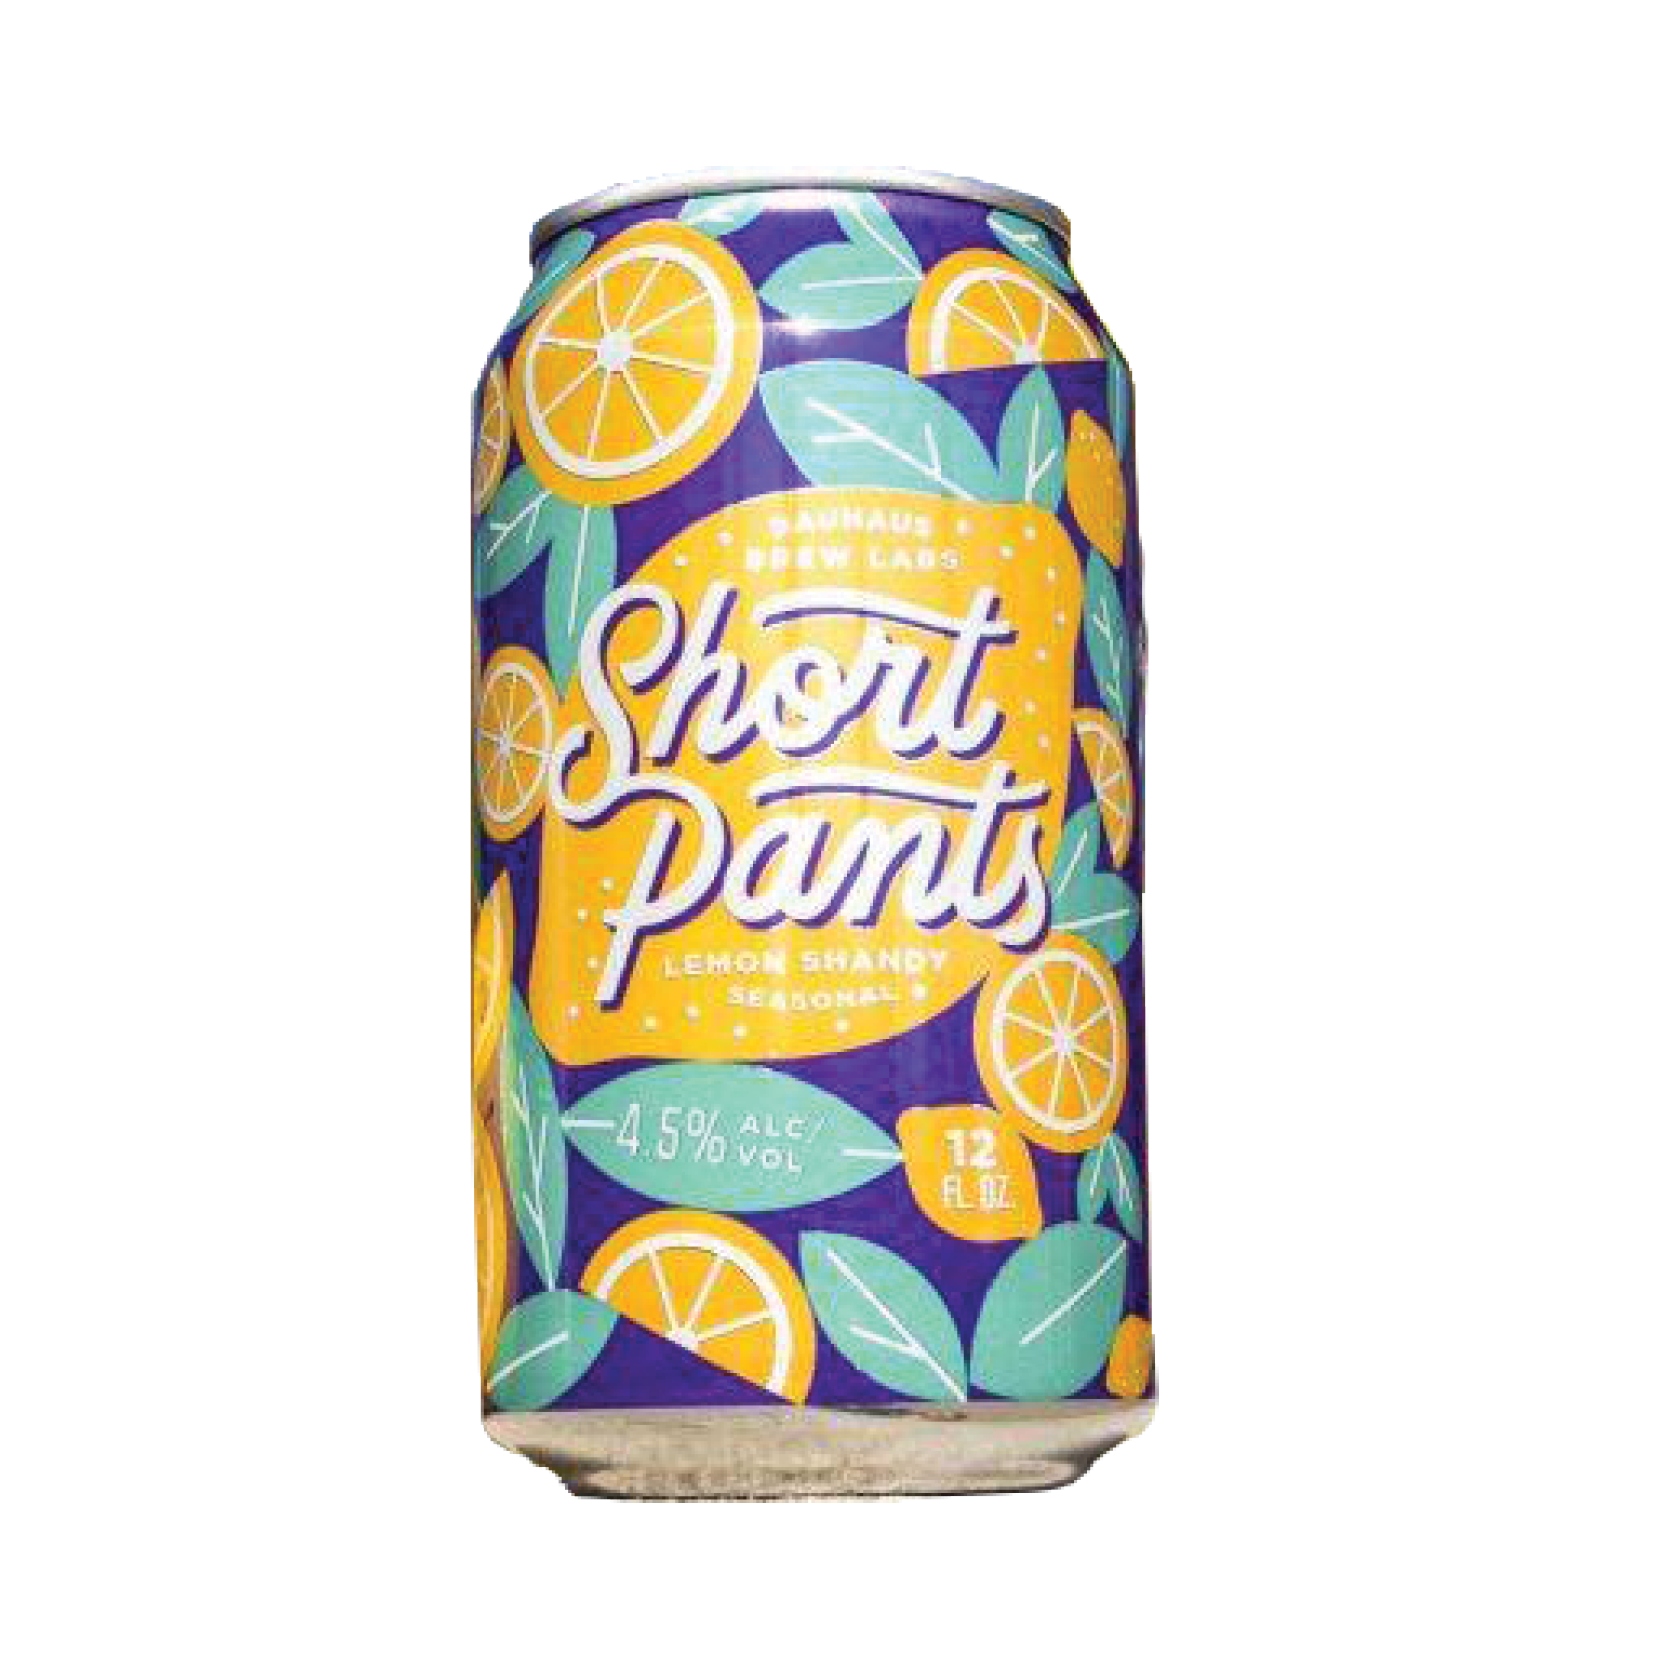 Bauhaus BAUHAUS SHORT PANTS LEMON SHANDY 6 PK CAN